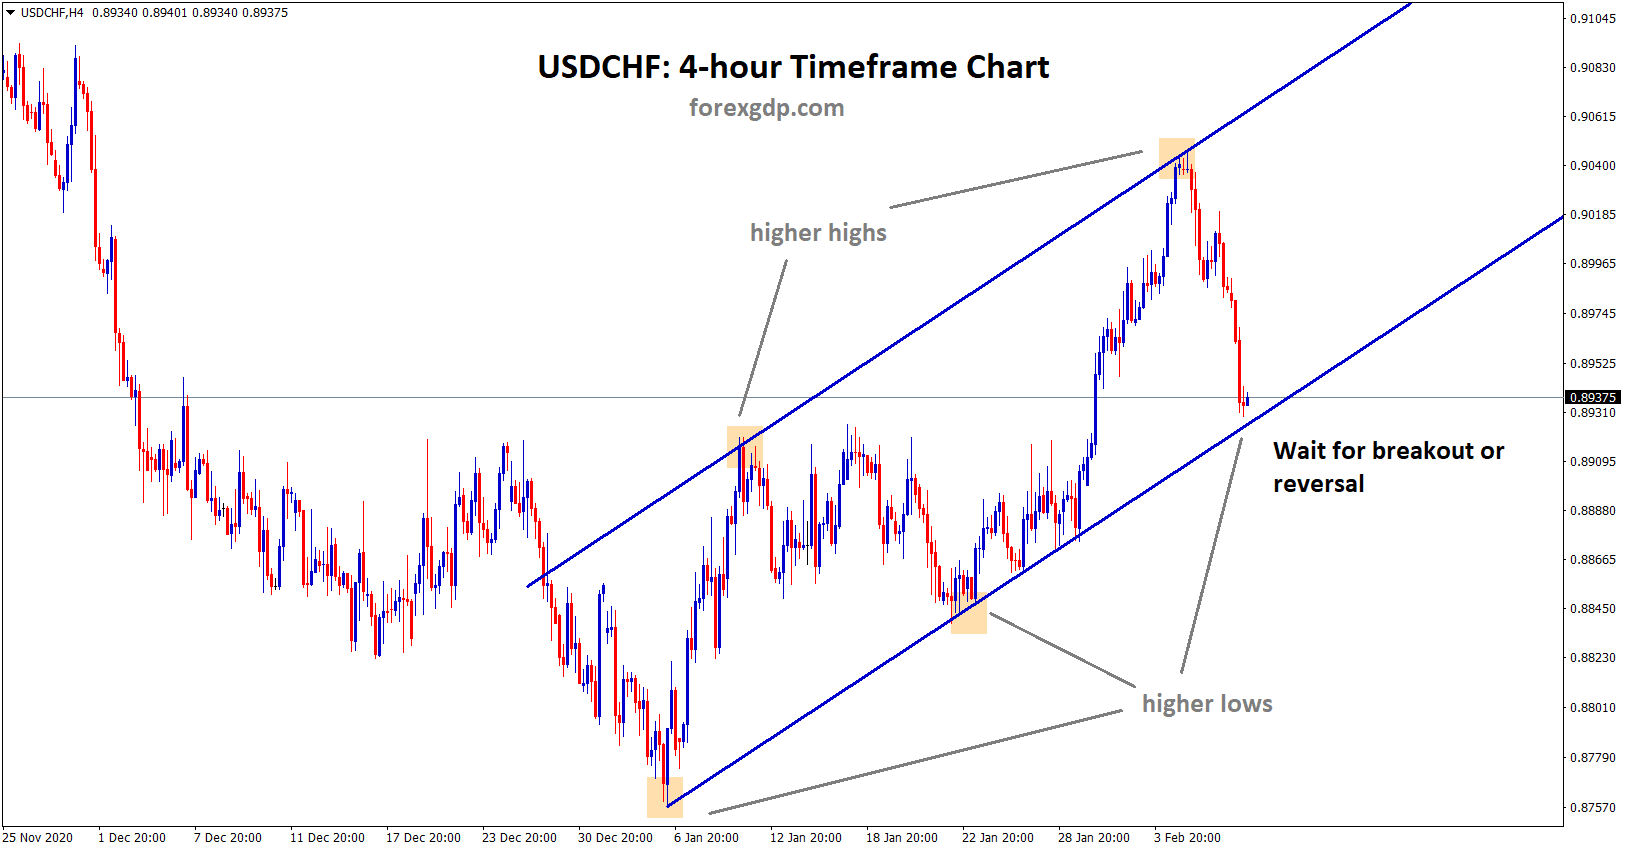 usdchf uptrend wait for breakout or reversal